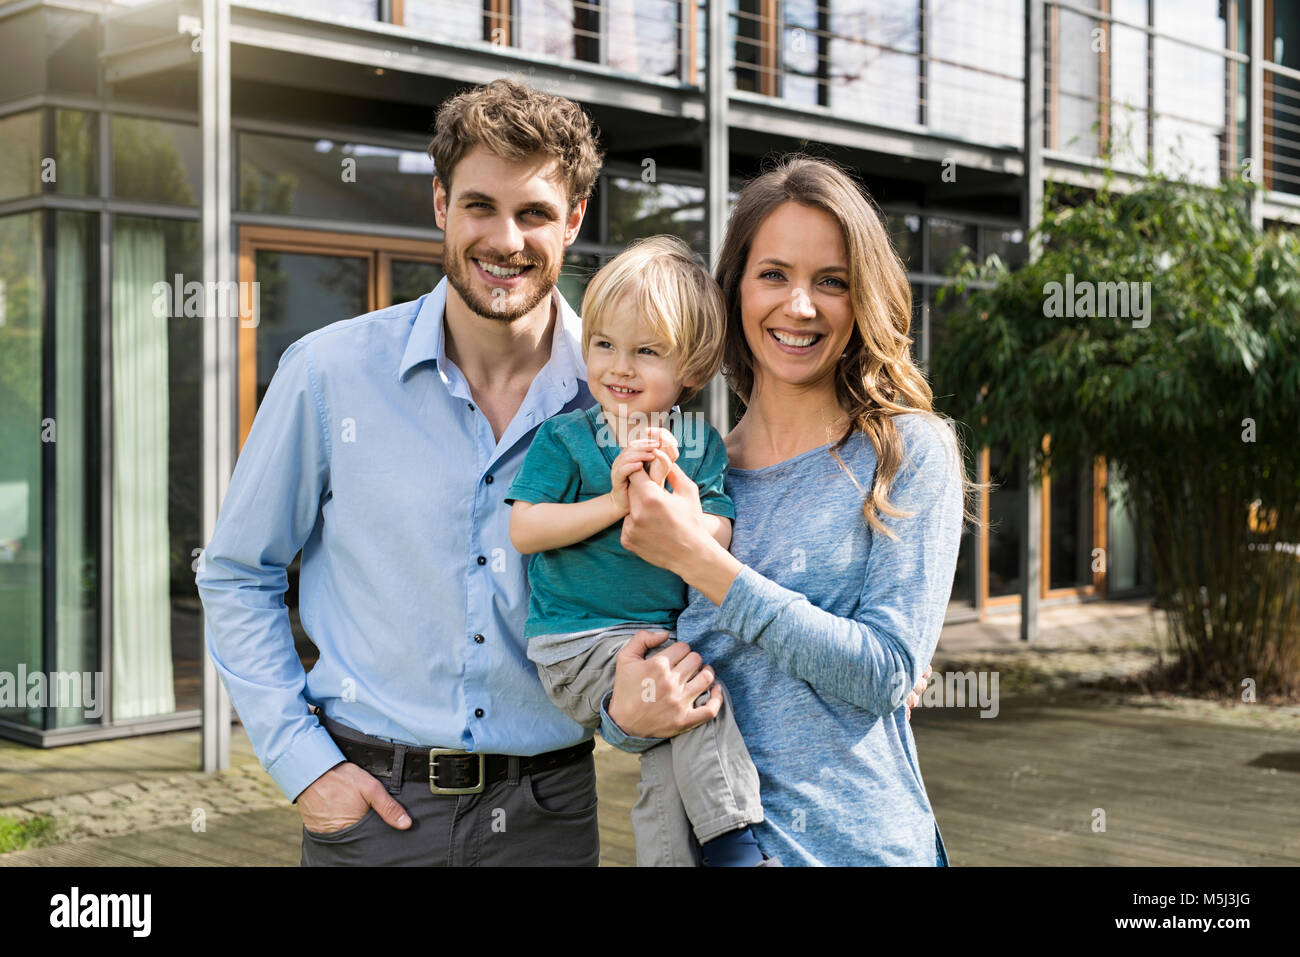 Portrait of smiling parents avec fils devant leur maison Photo Stock